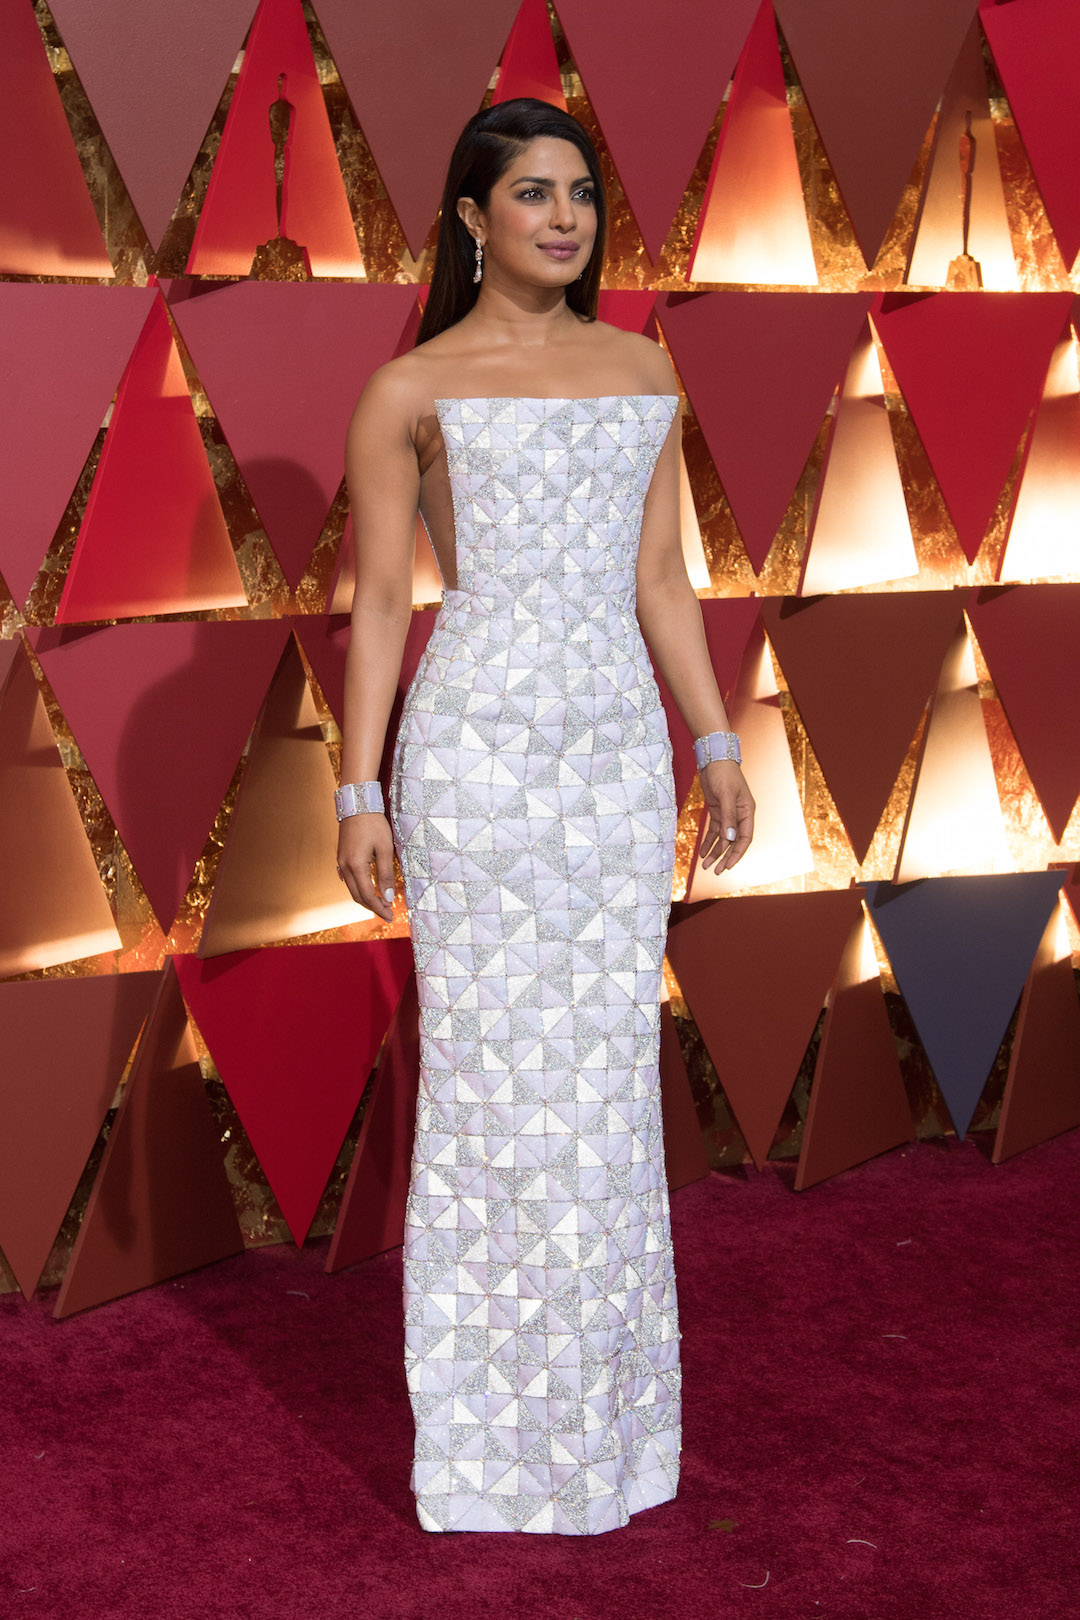 Priyanka Chopra arrive on the red carpet of The 89th Oscars®